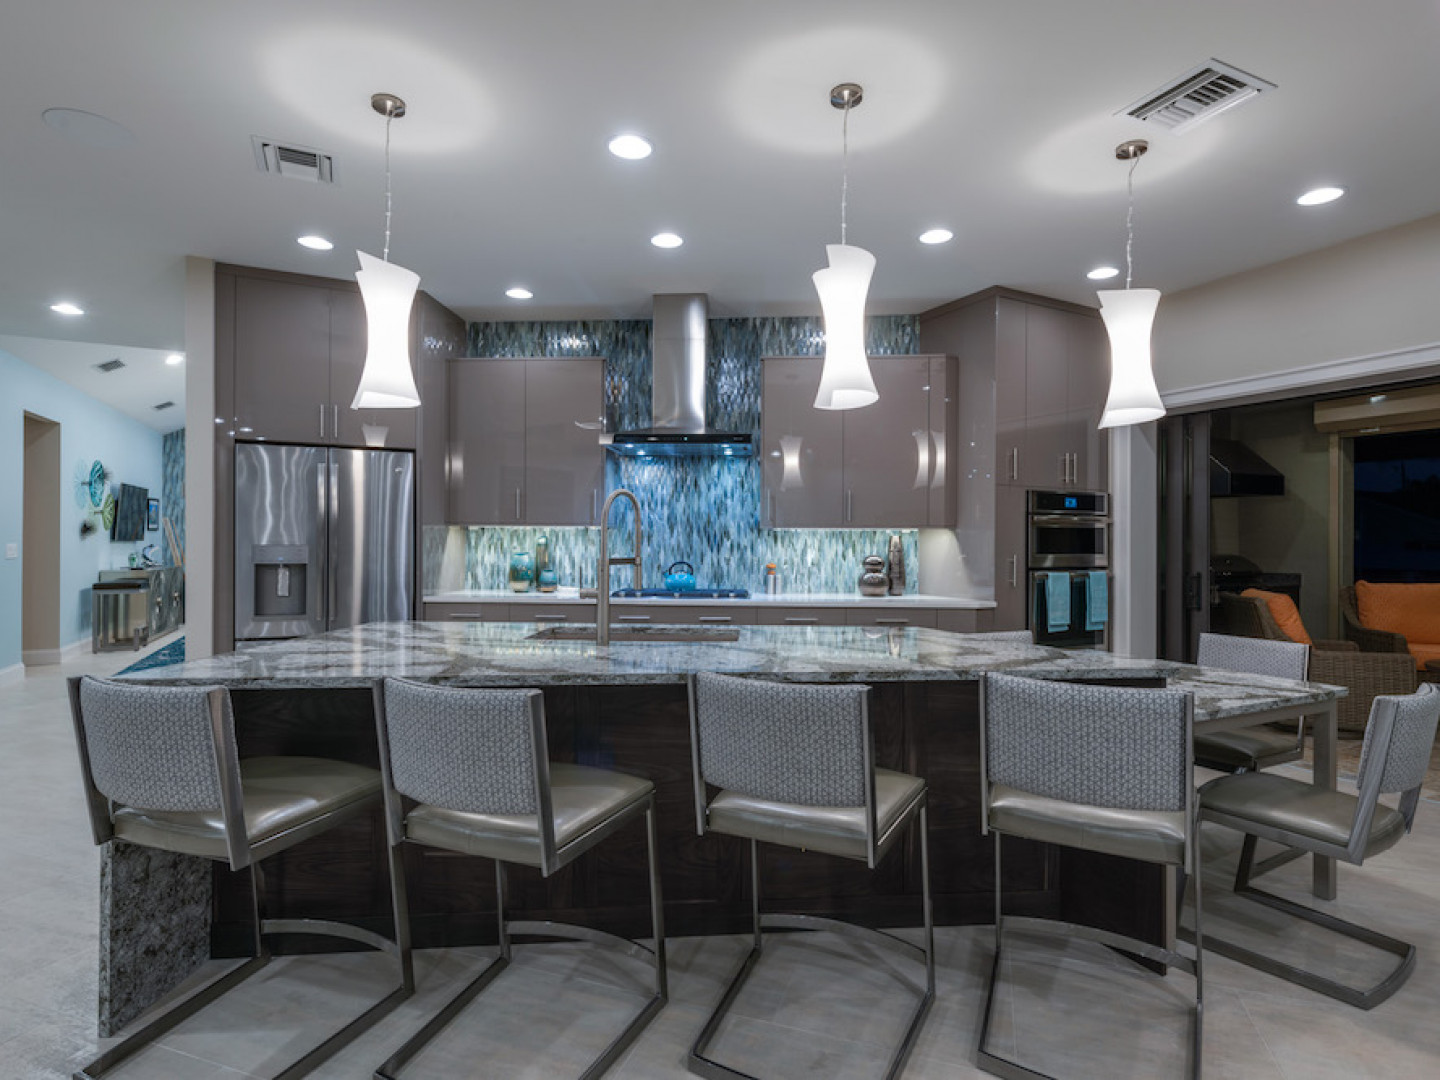 Superior's custom kitchen designers will help you create your dream kitchen